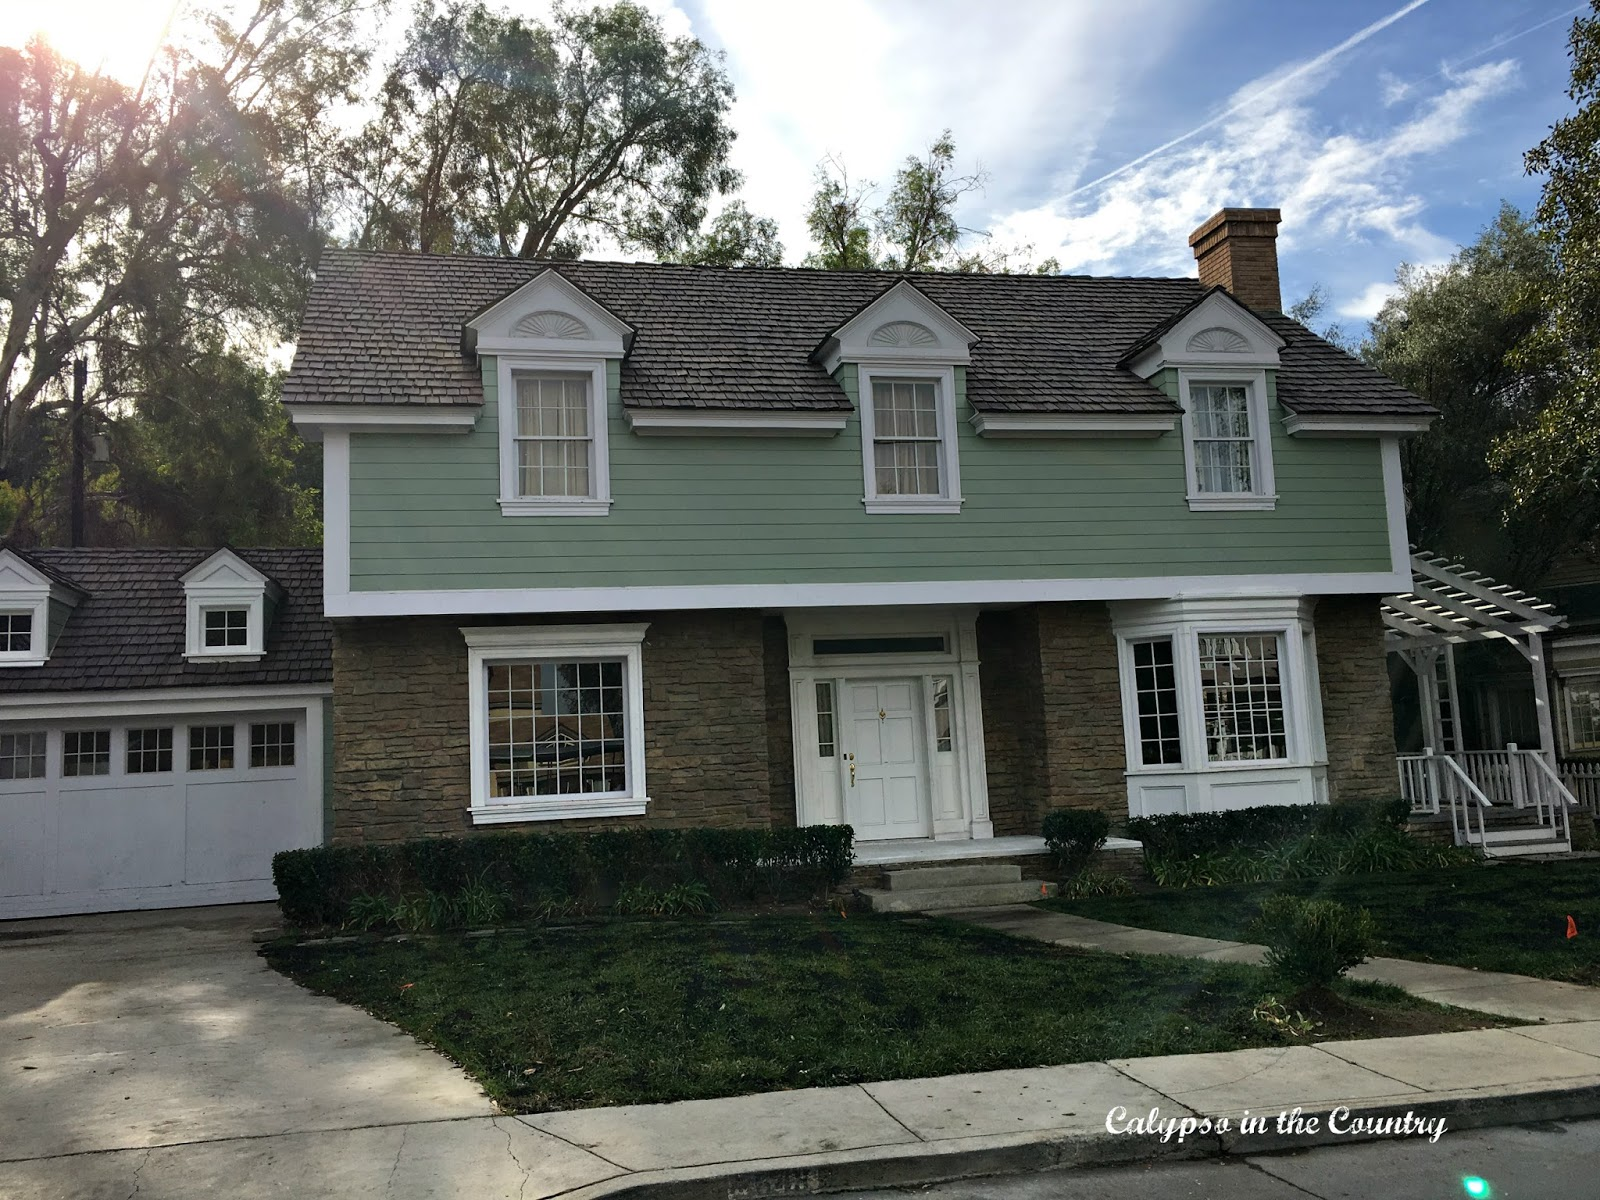 Houses on Colonial Street - Universal Studios Tour